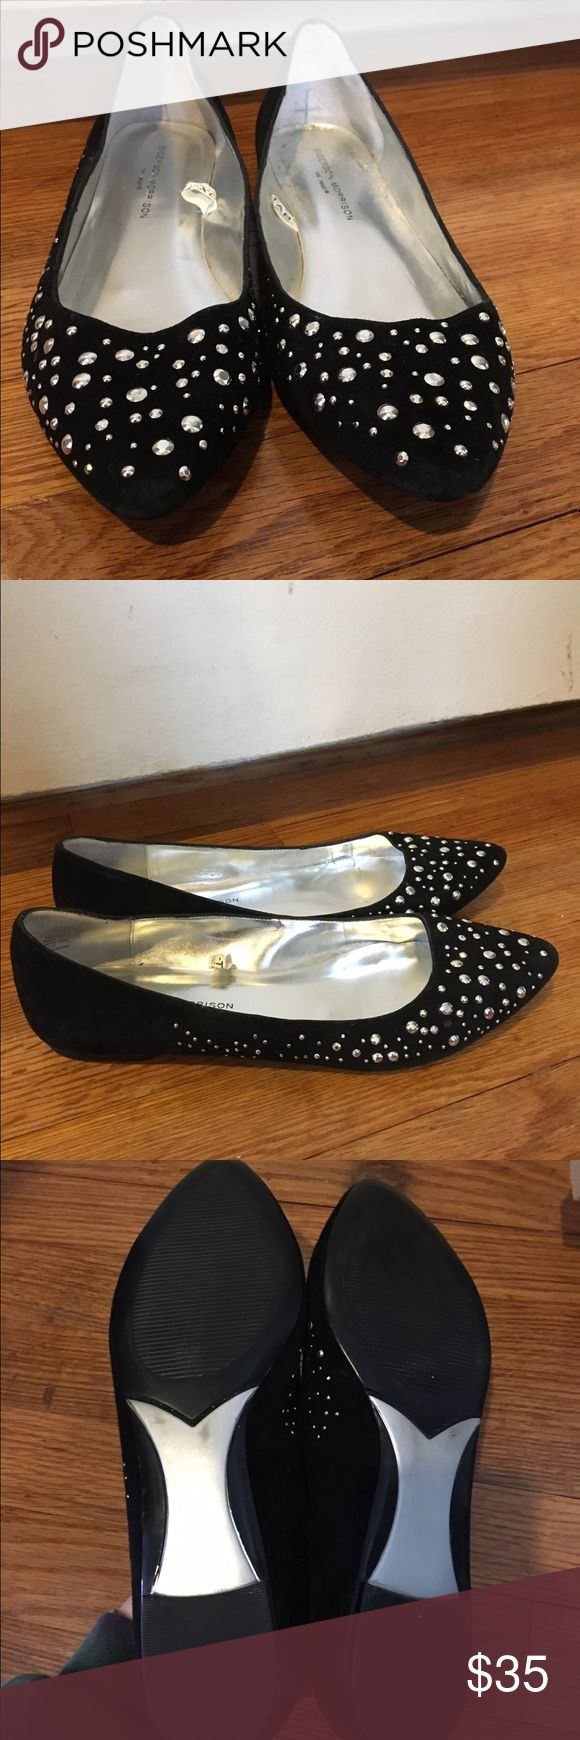 Sigerson Morrison for target black flats  NWOT Nwot sigerson Morrison for target black suede silver studded flats. Cleaning out the closet looking for a new home! sigerson morrison for target Shoes Flats & Loafers